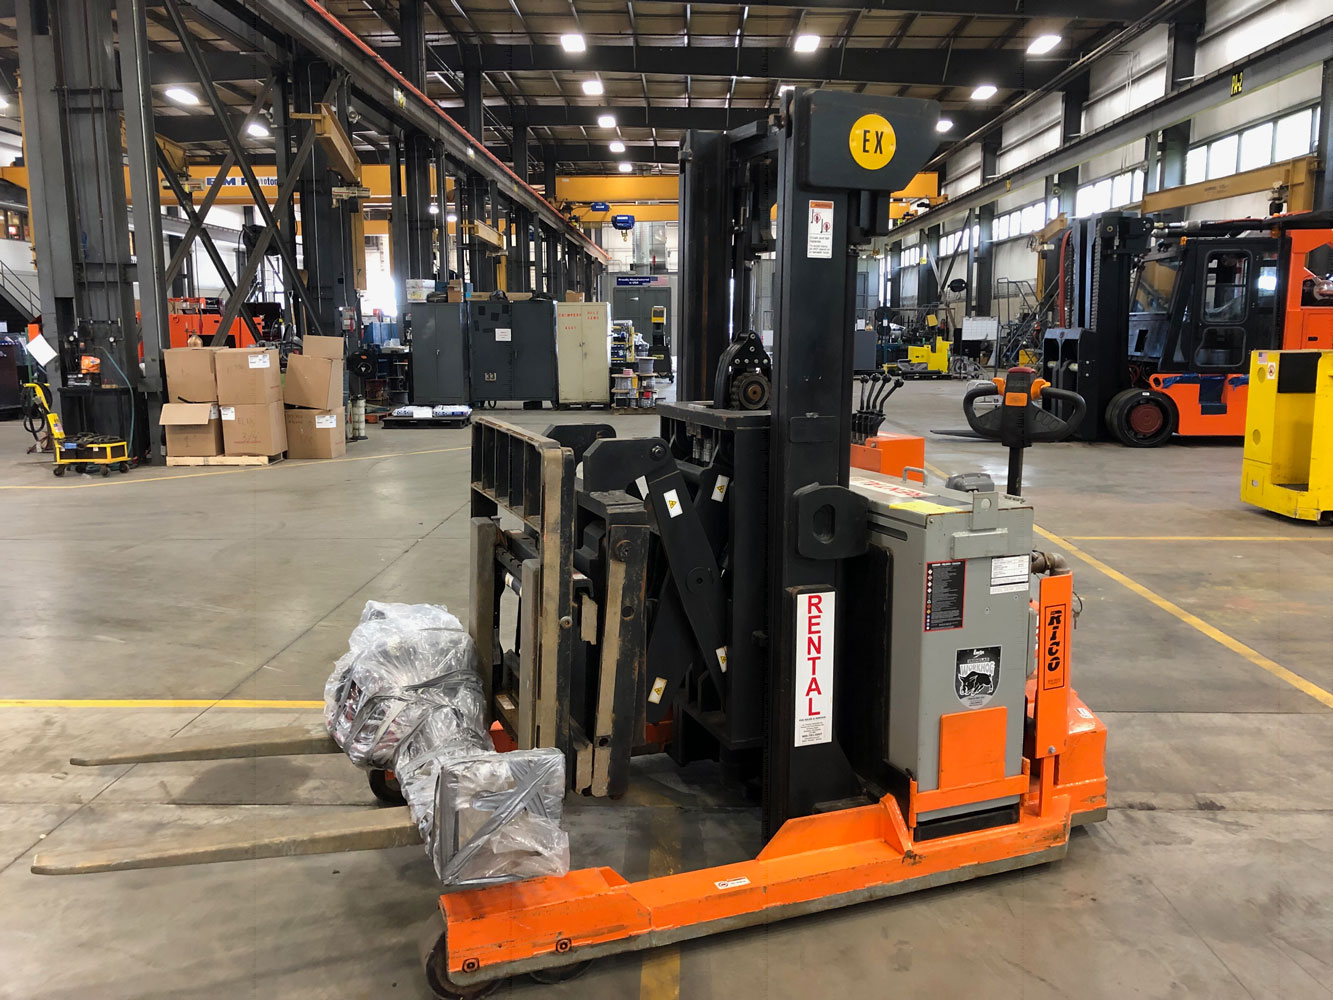 Used EX Reach Lift Truck